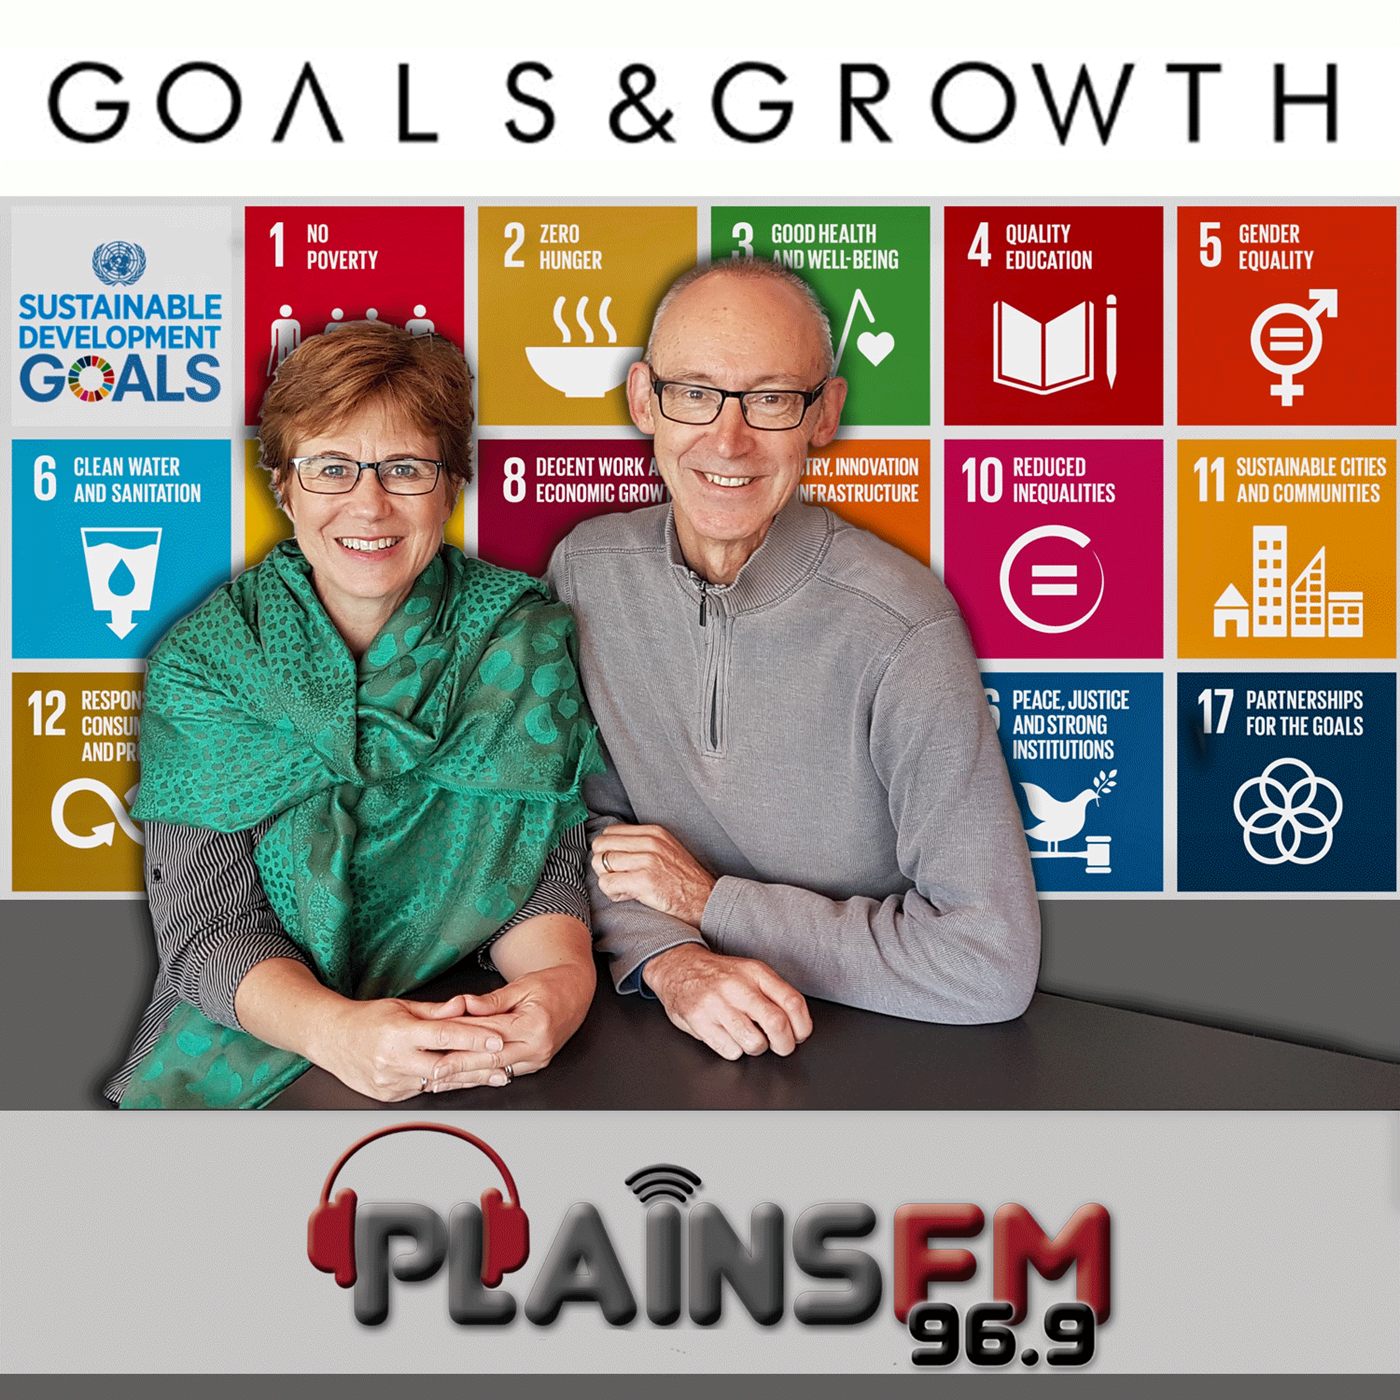 Goals and Growth-23-08-2019 - Psychology of Goals - Part 2